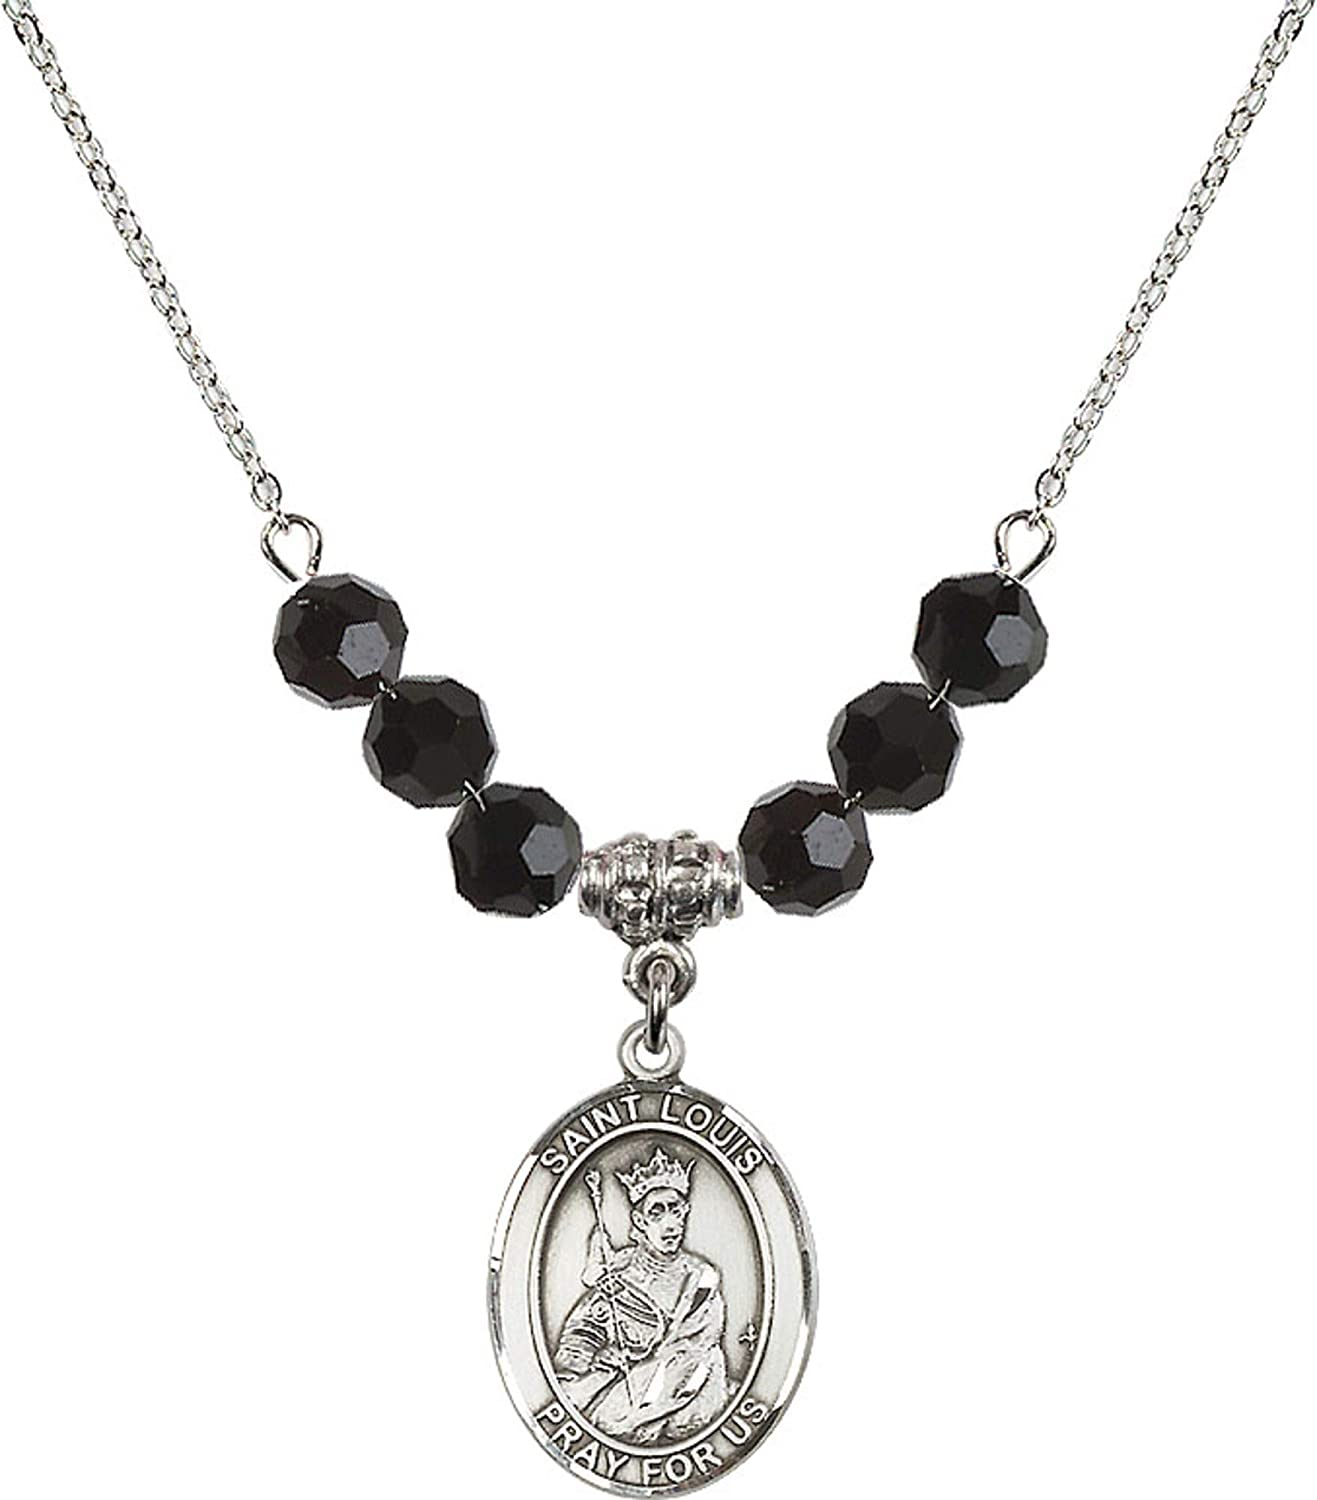 Bonyak Jewelry 18 Inch Rhodium Plated Necklace w// 6mm Jet Birth Month Stone Beads and Saint Louis Charm